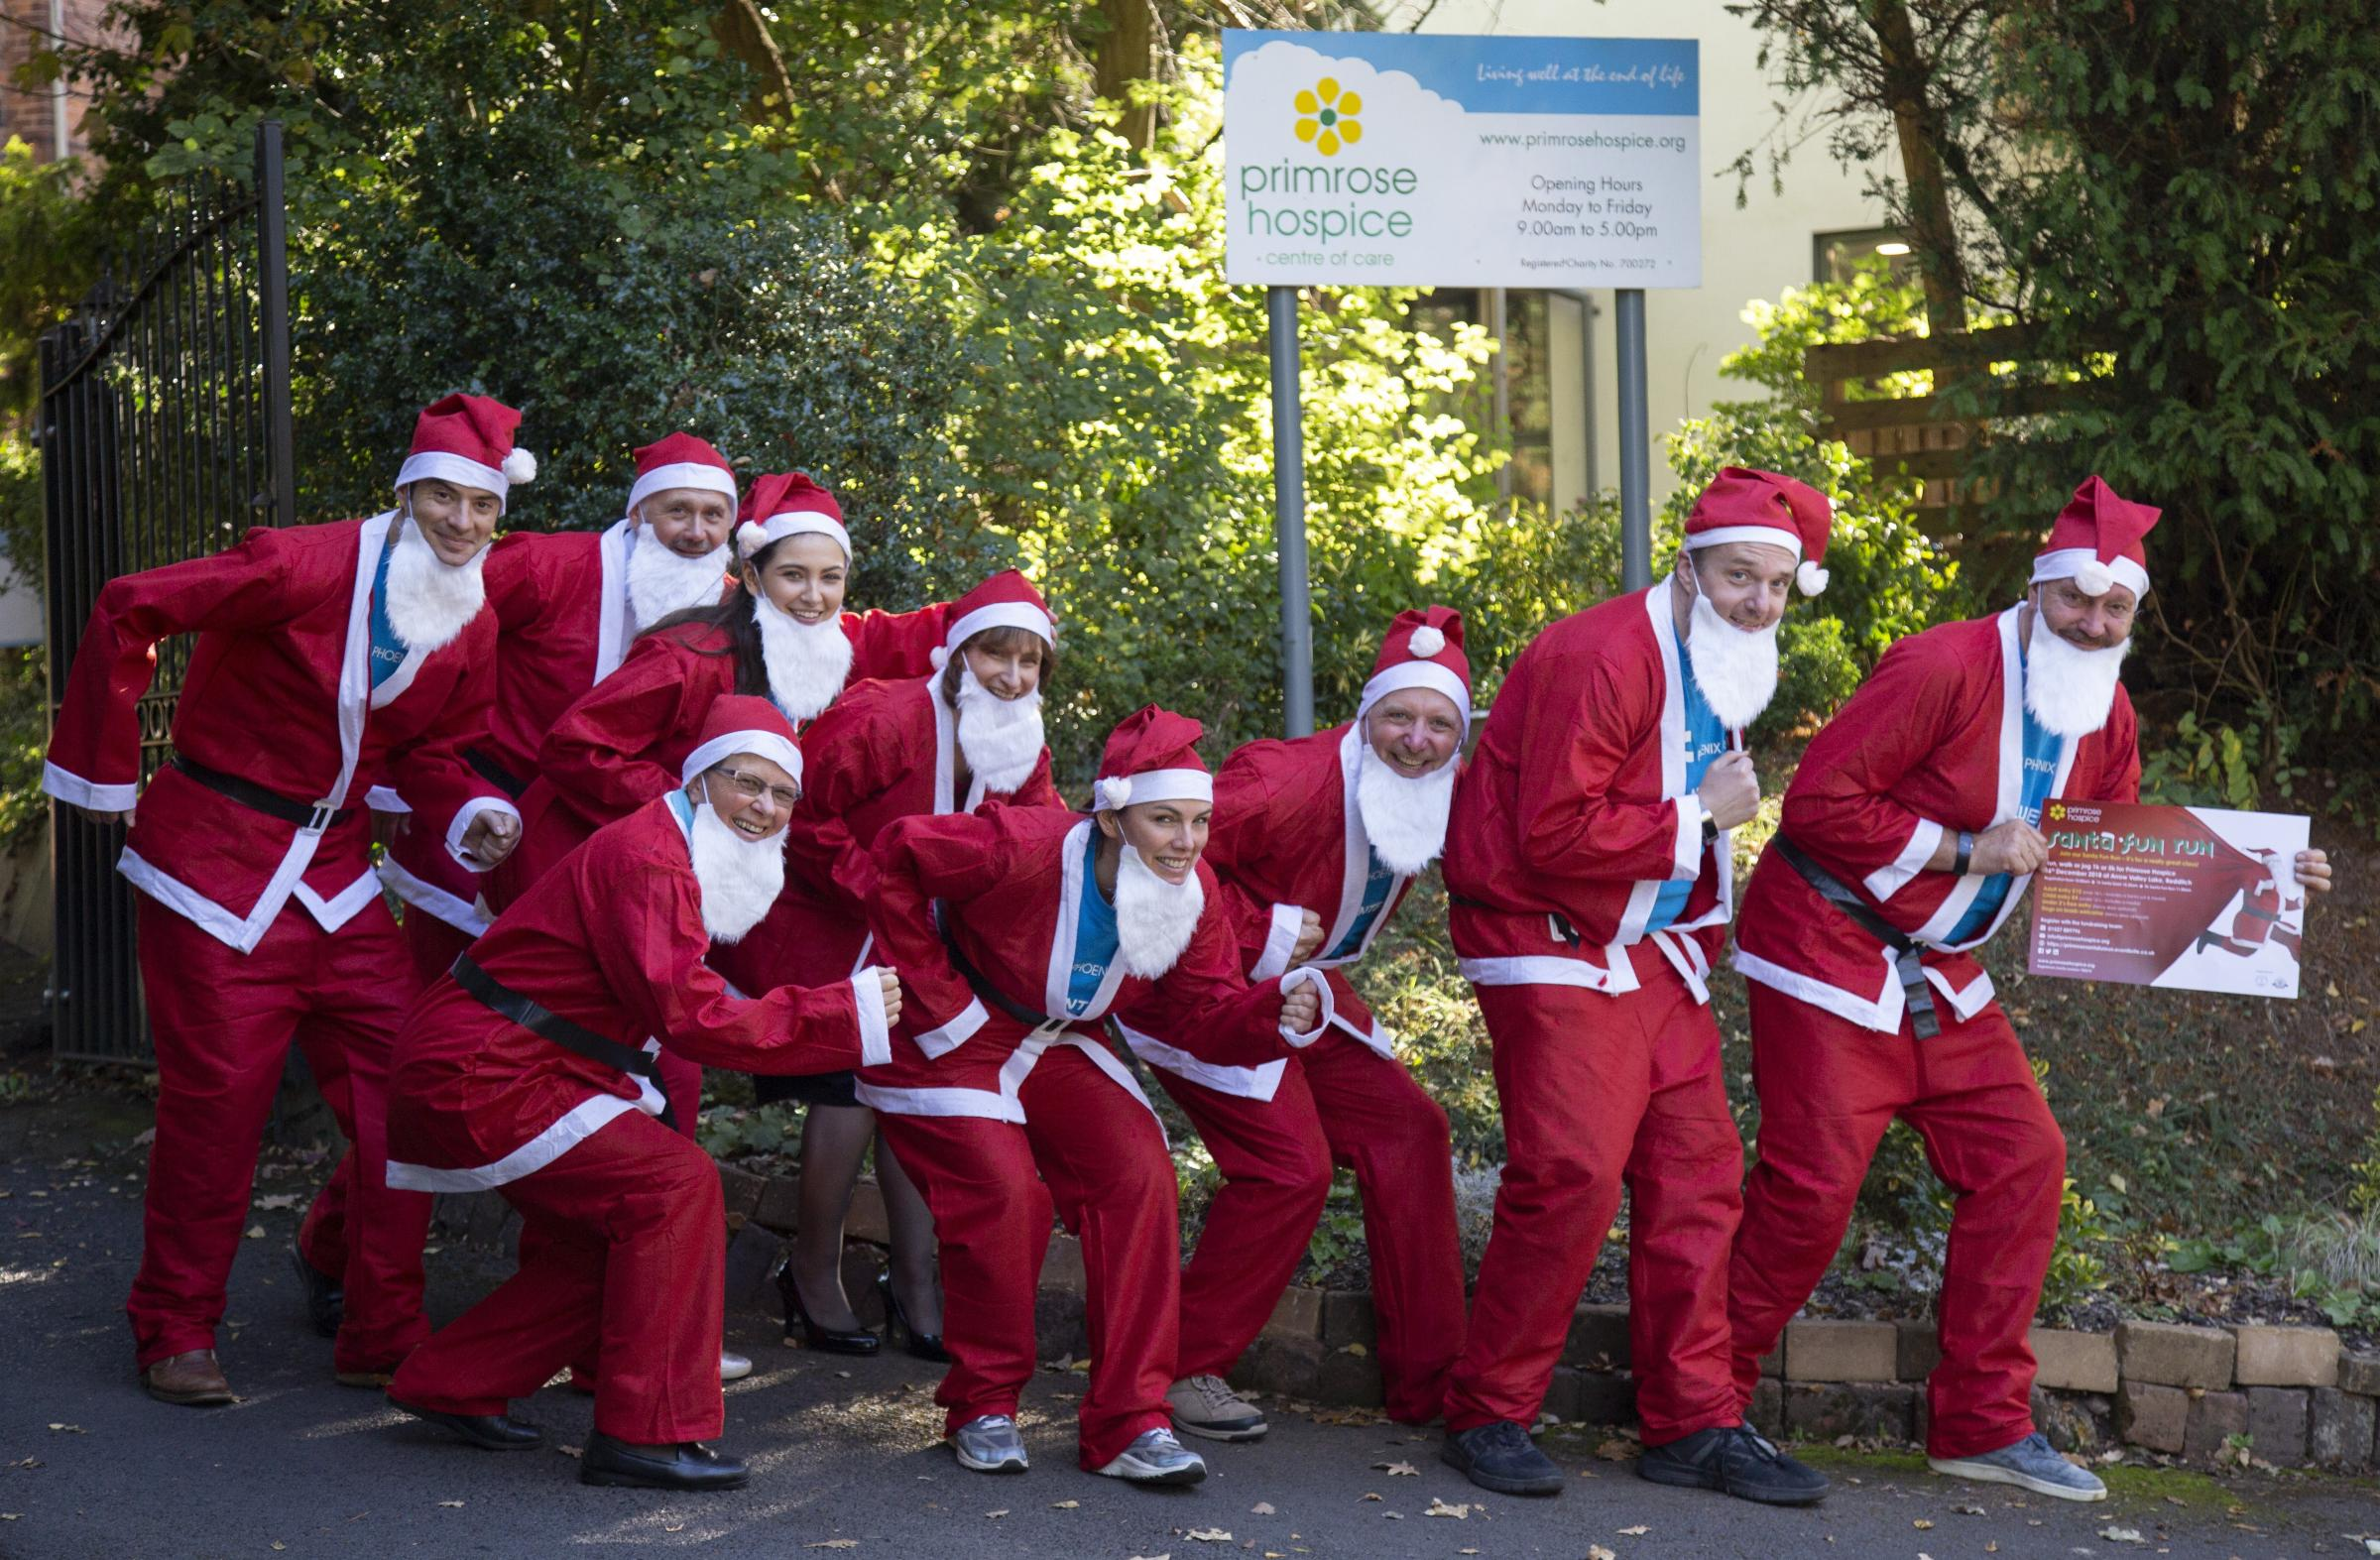 A group of volunteers from The Phoenix Group and staff from Primrose Hospice are getting in the Christmas spirit